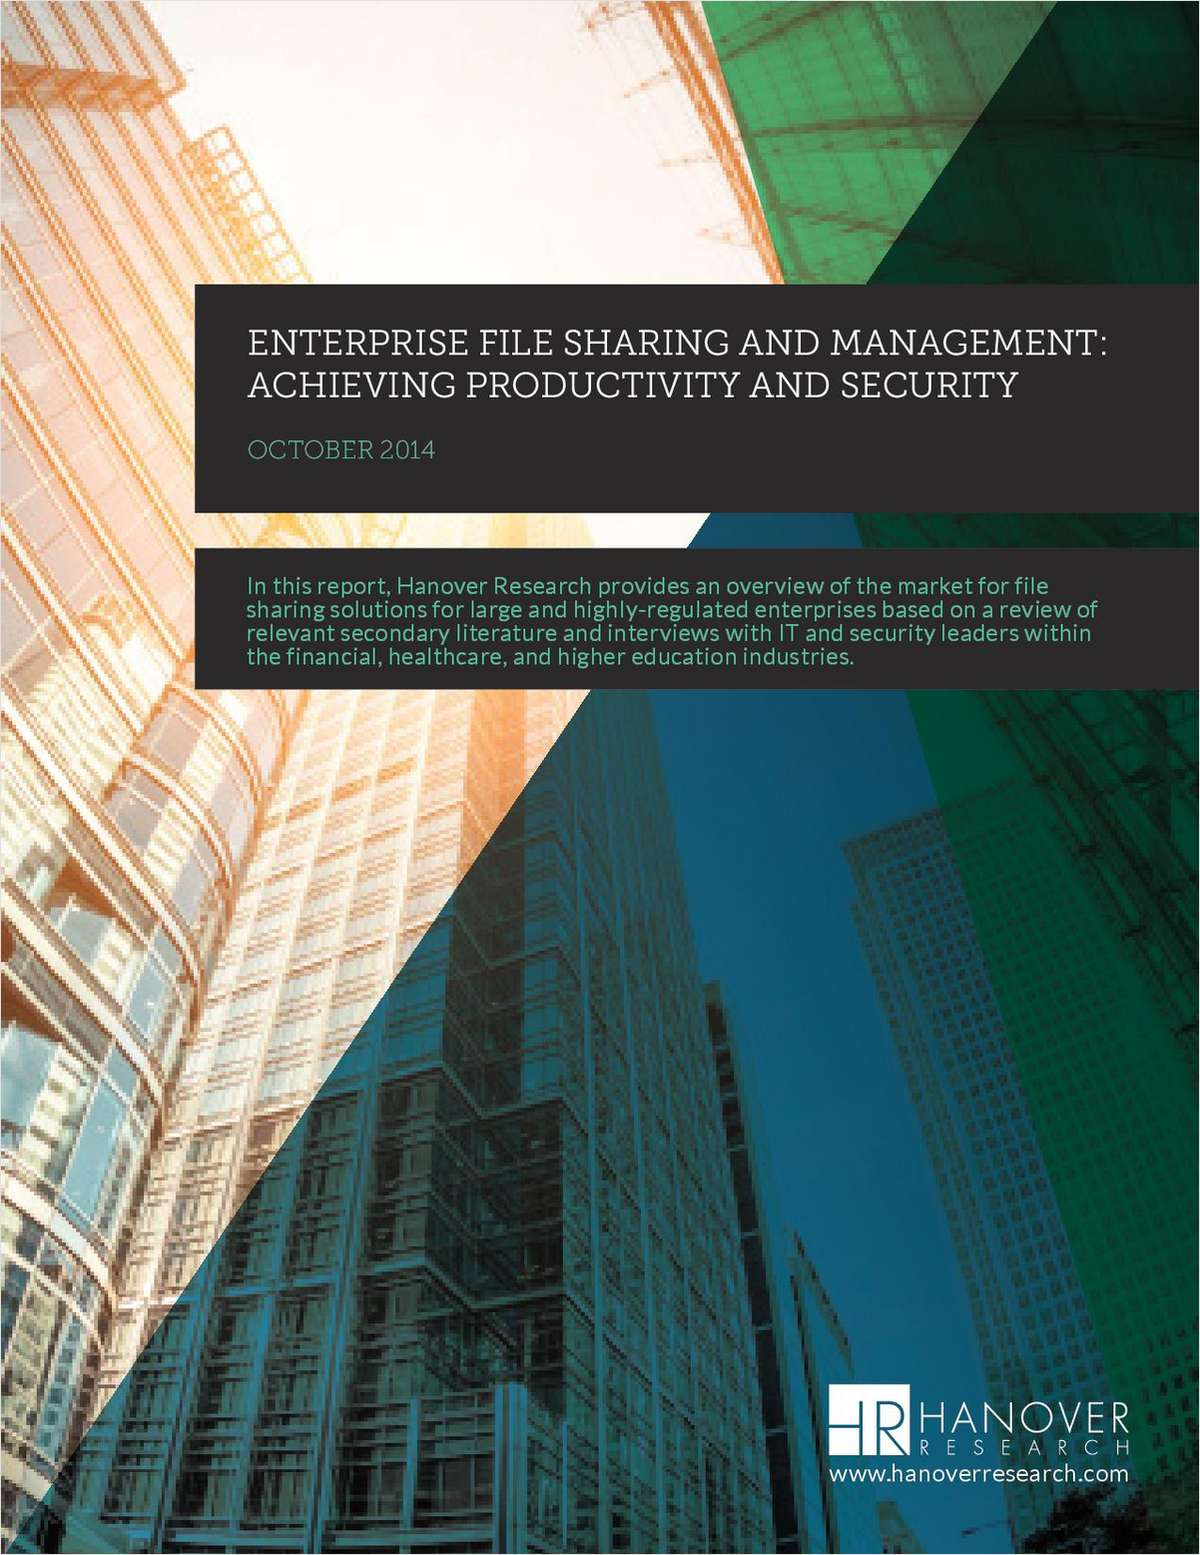 Enterprise File Sharing and Management: Achieving Productivity and Security